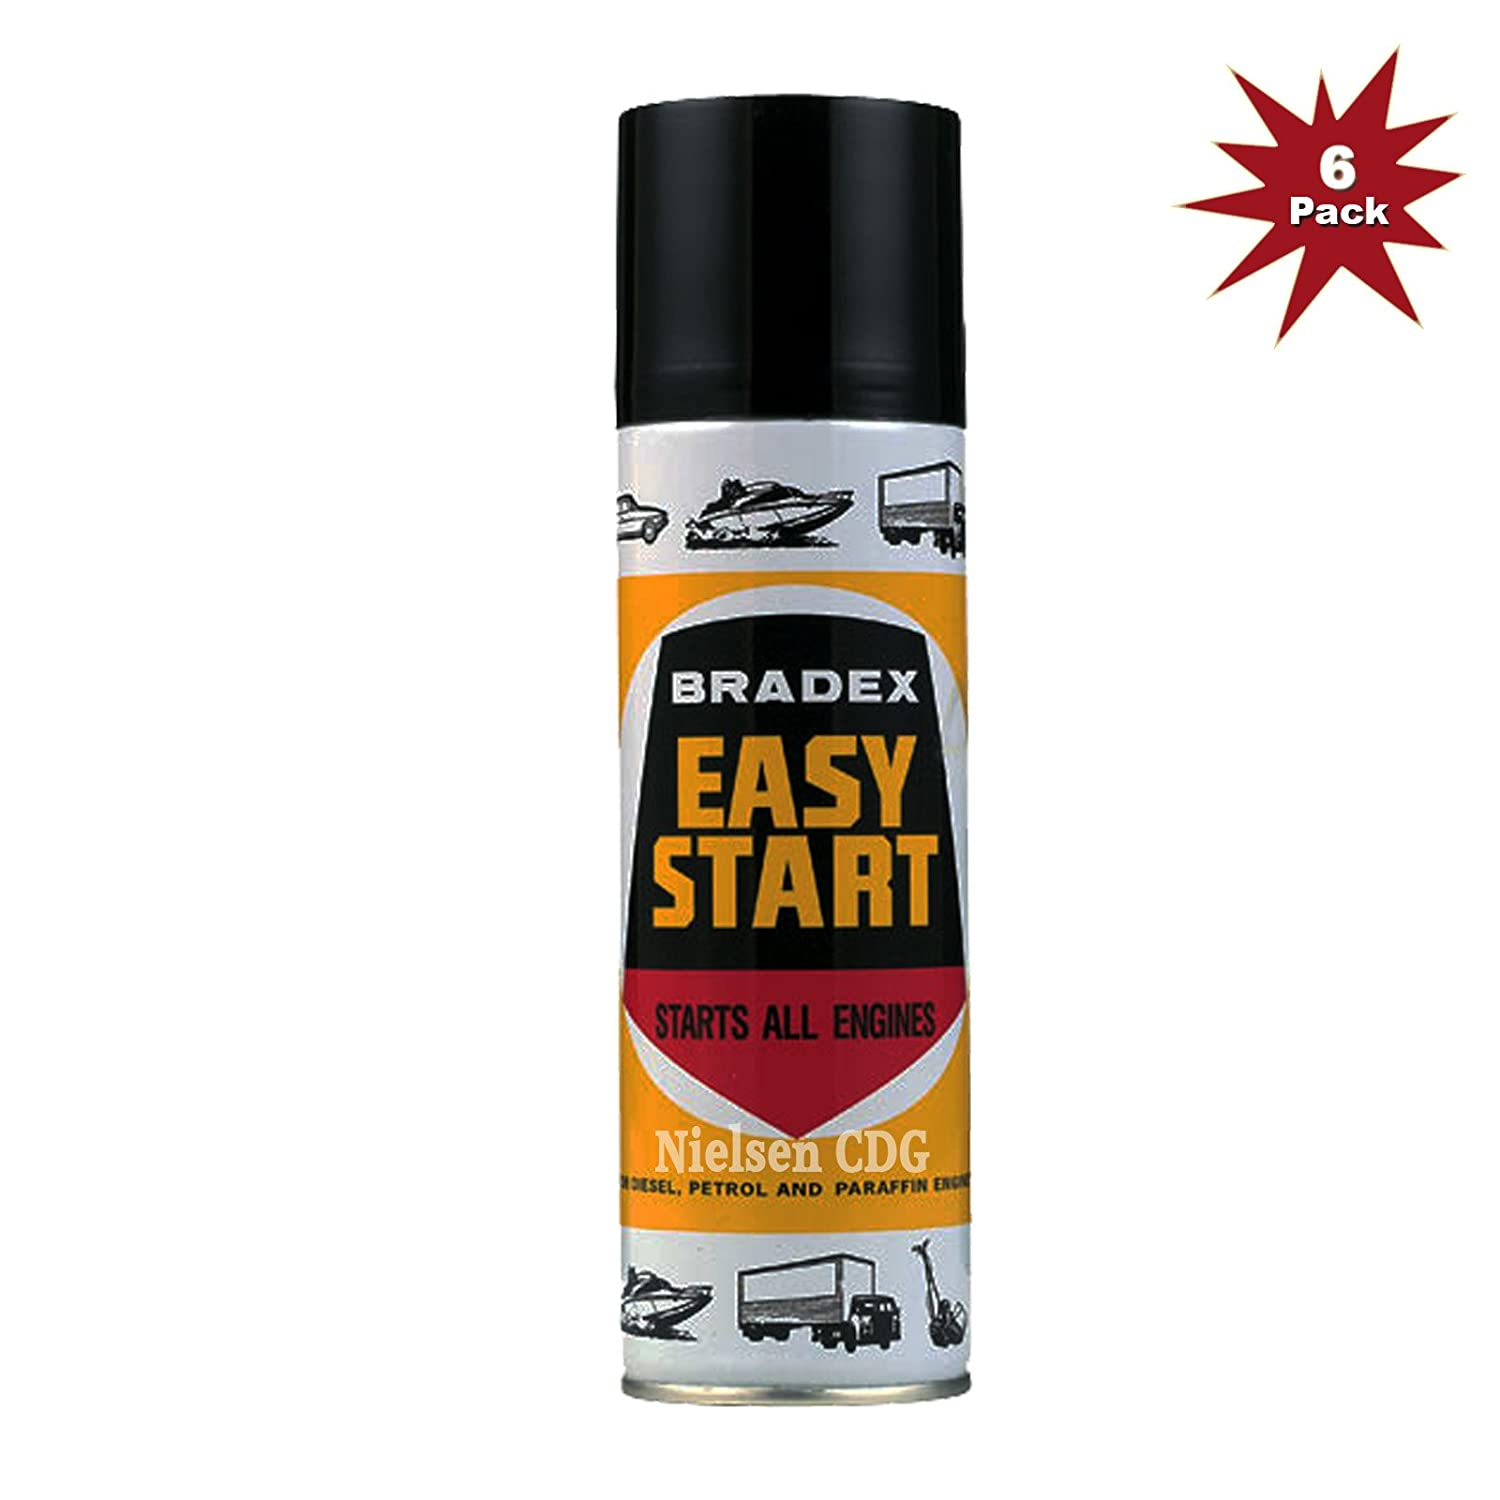 Bradex Easy Start HOL-BES1A-6 - 6x300ml = 6 Pack Holt LLoyd